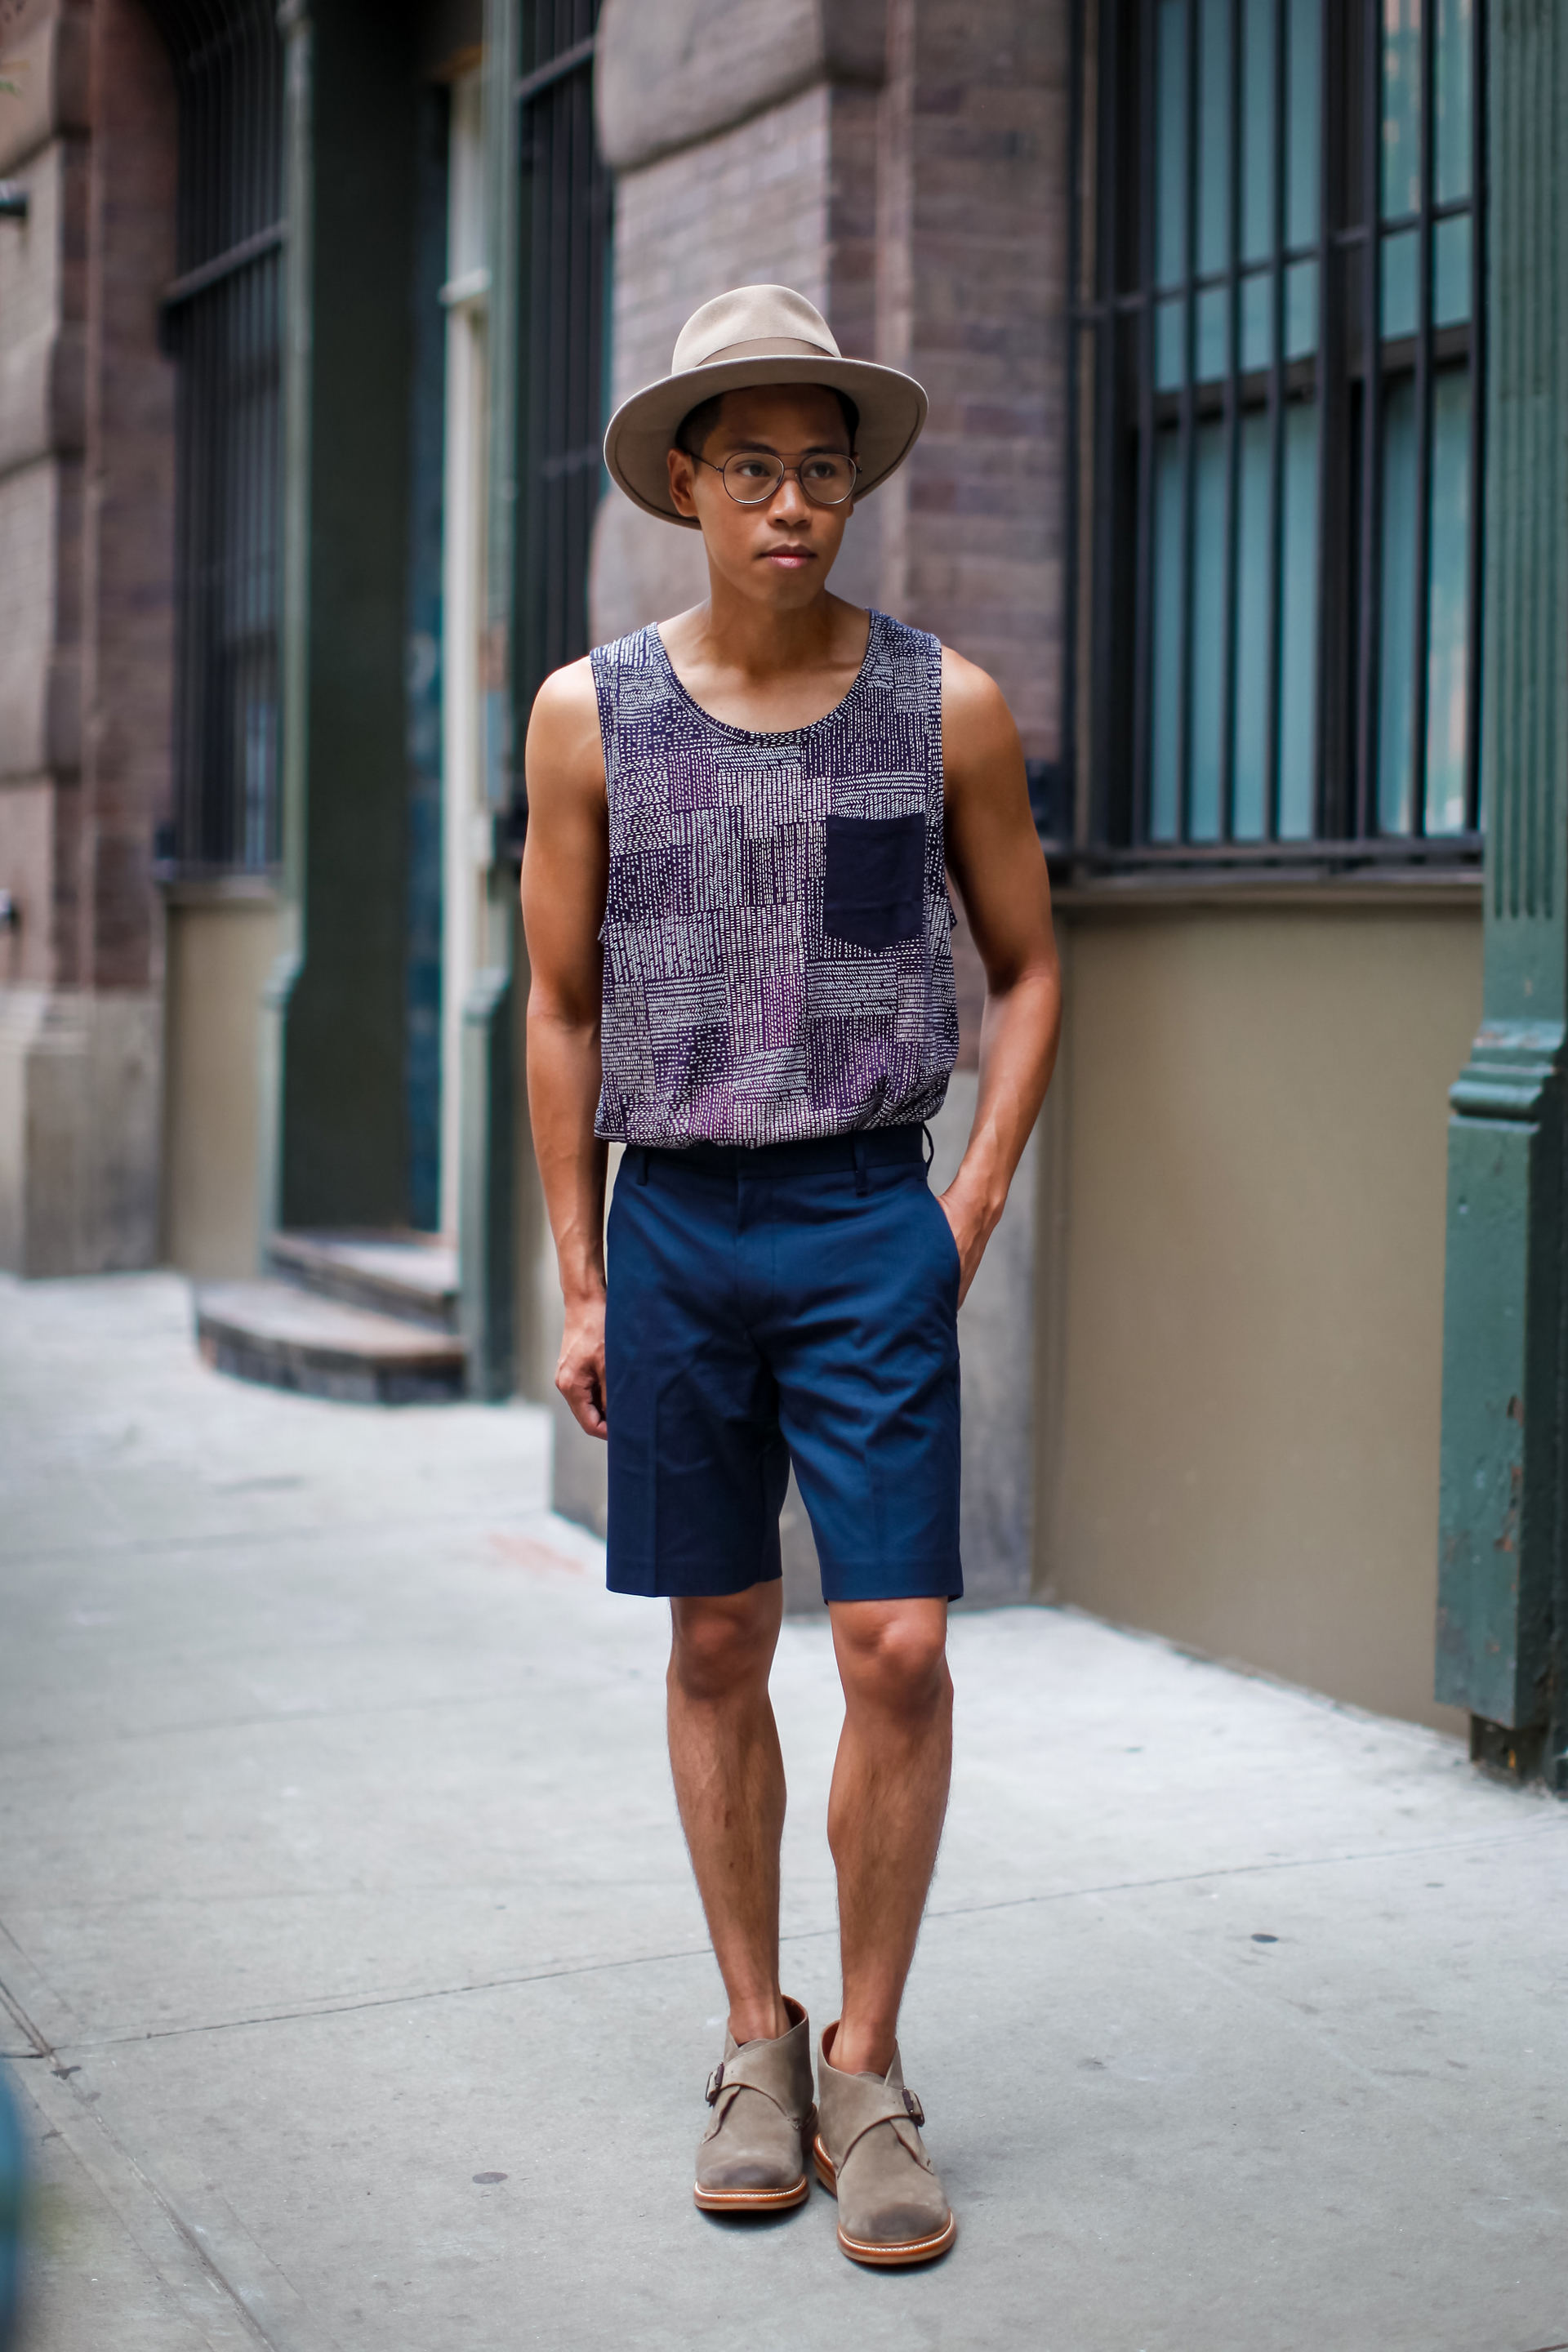 oh anthonio - Anthony Urbano - men's tank top outfit